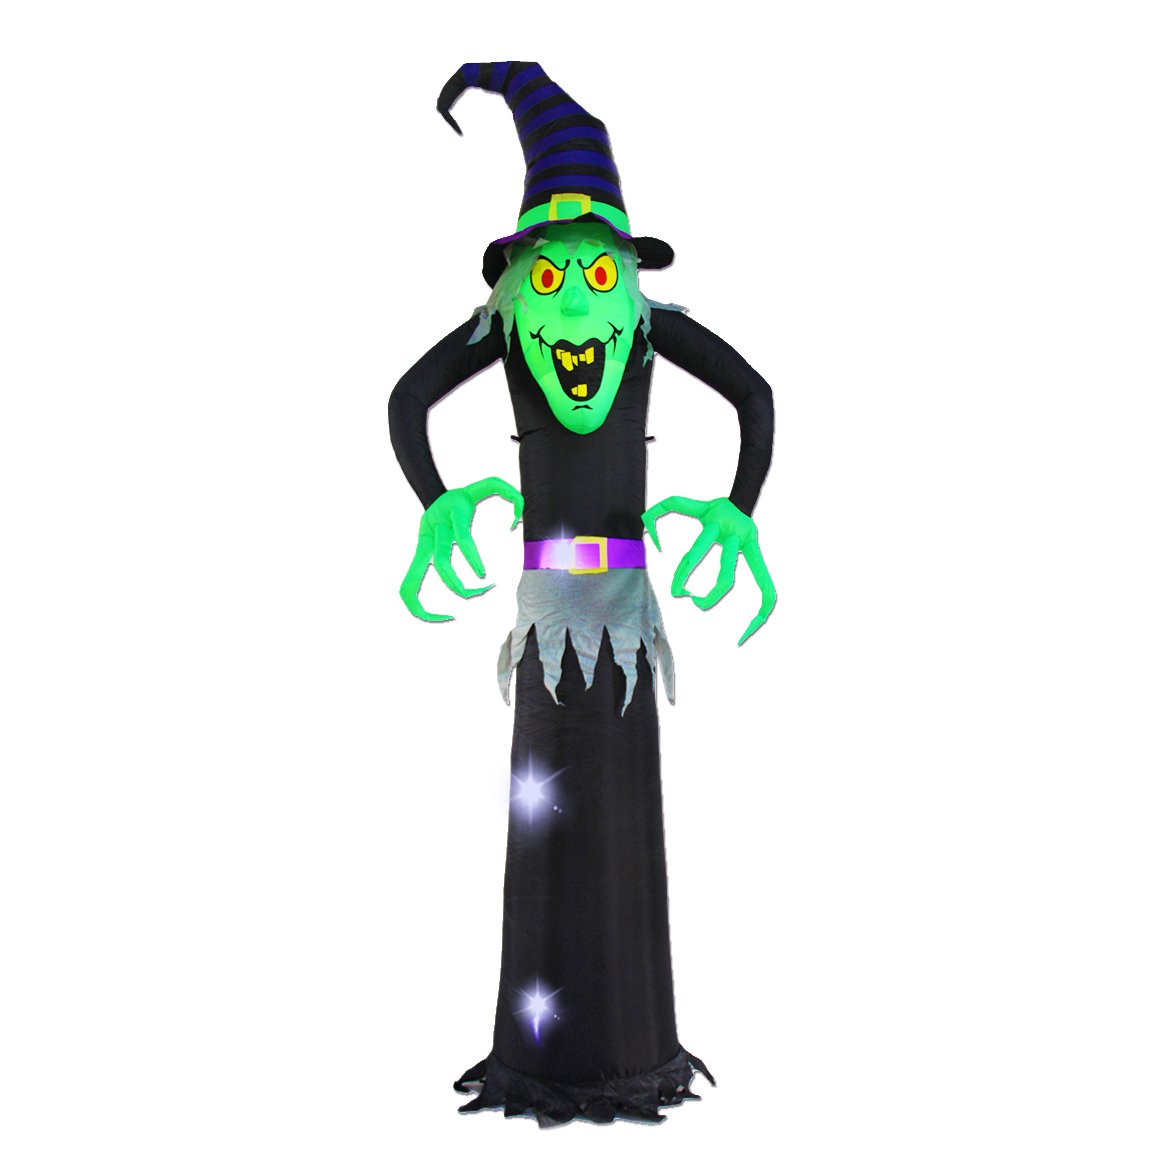 8Ft Inflatable Halloween Witch Decoration Black Ghost Inflatables Decorations for Home Yard Lawn Garden Party Indoor Outdoor Inslife